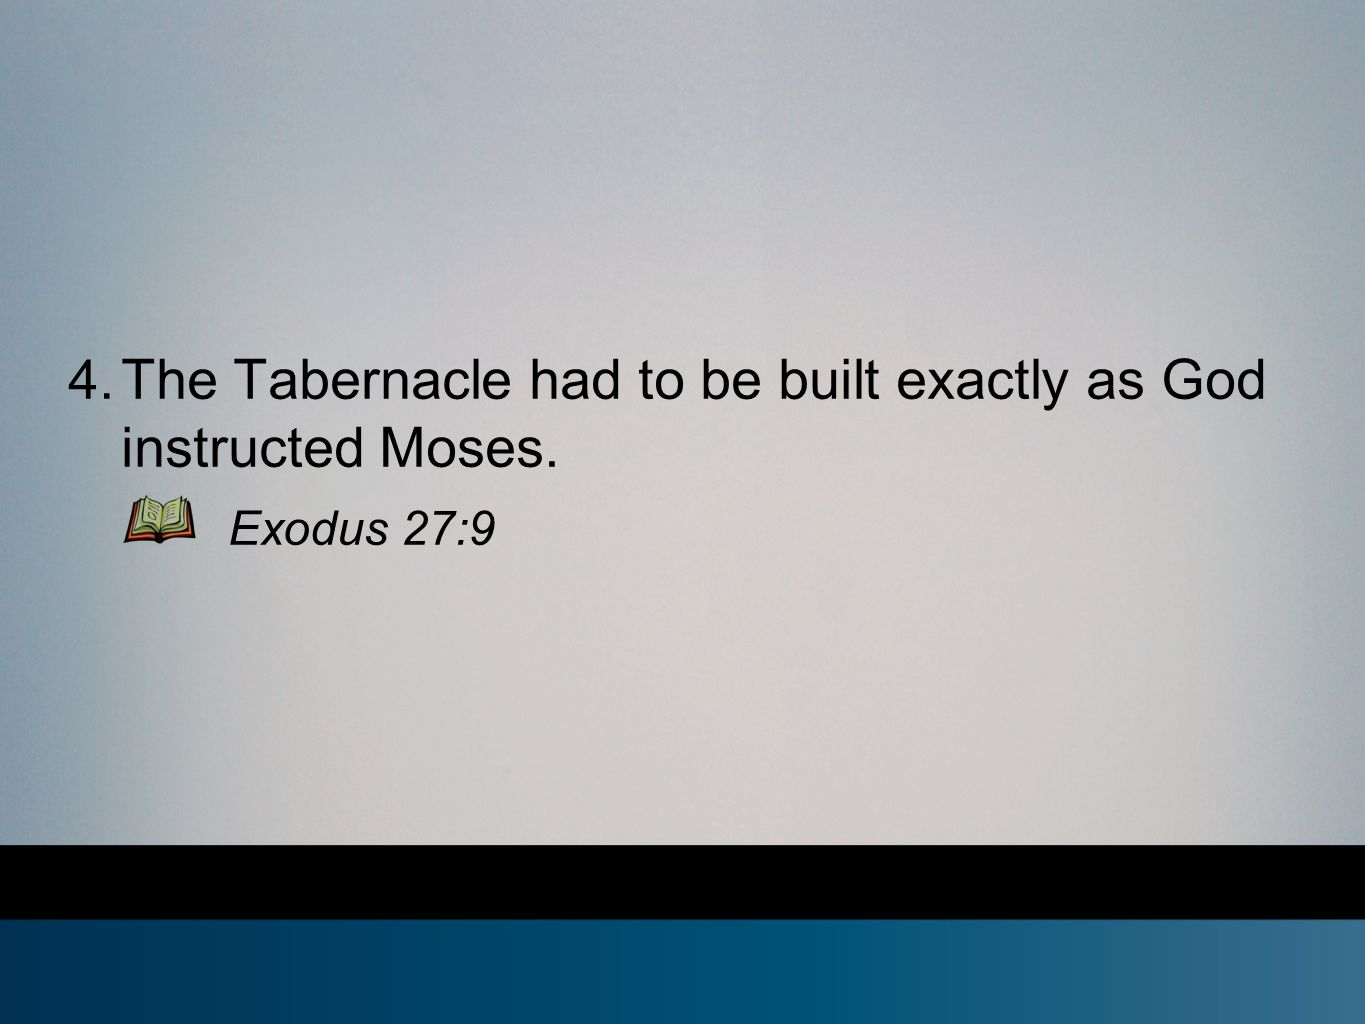 4. The Tabernacle had to be built exactly as God instructed Moses. Exodus 27:9